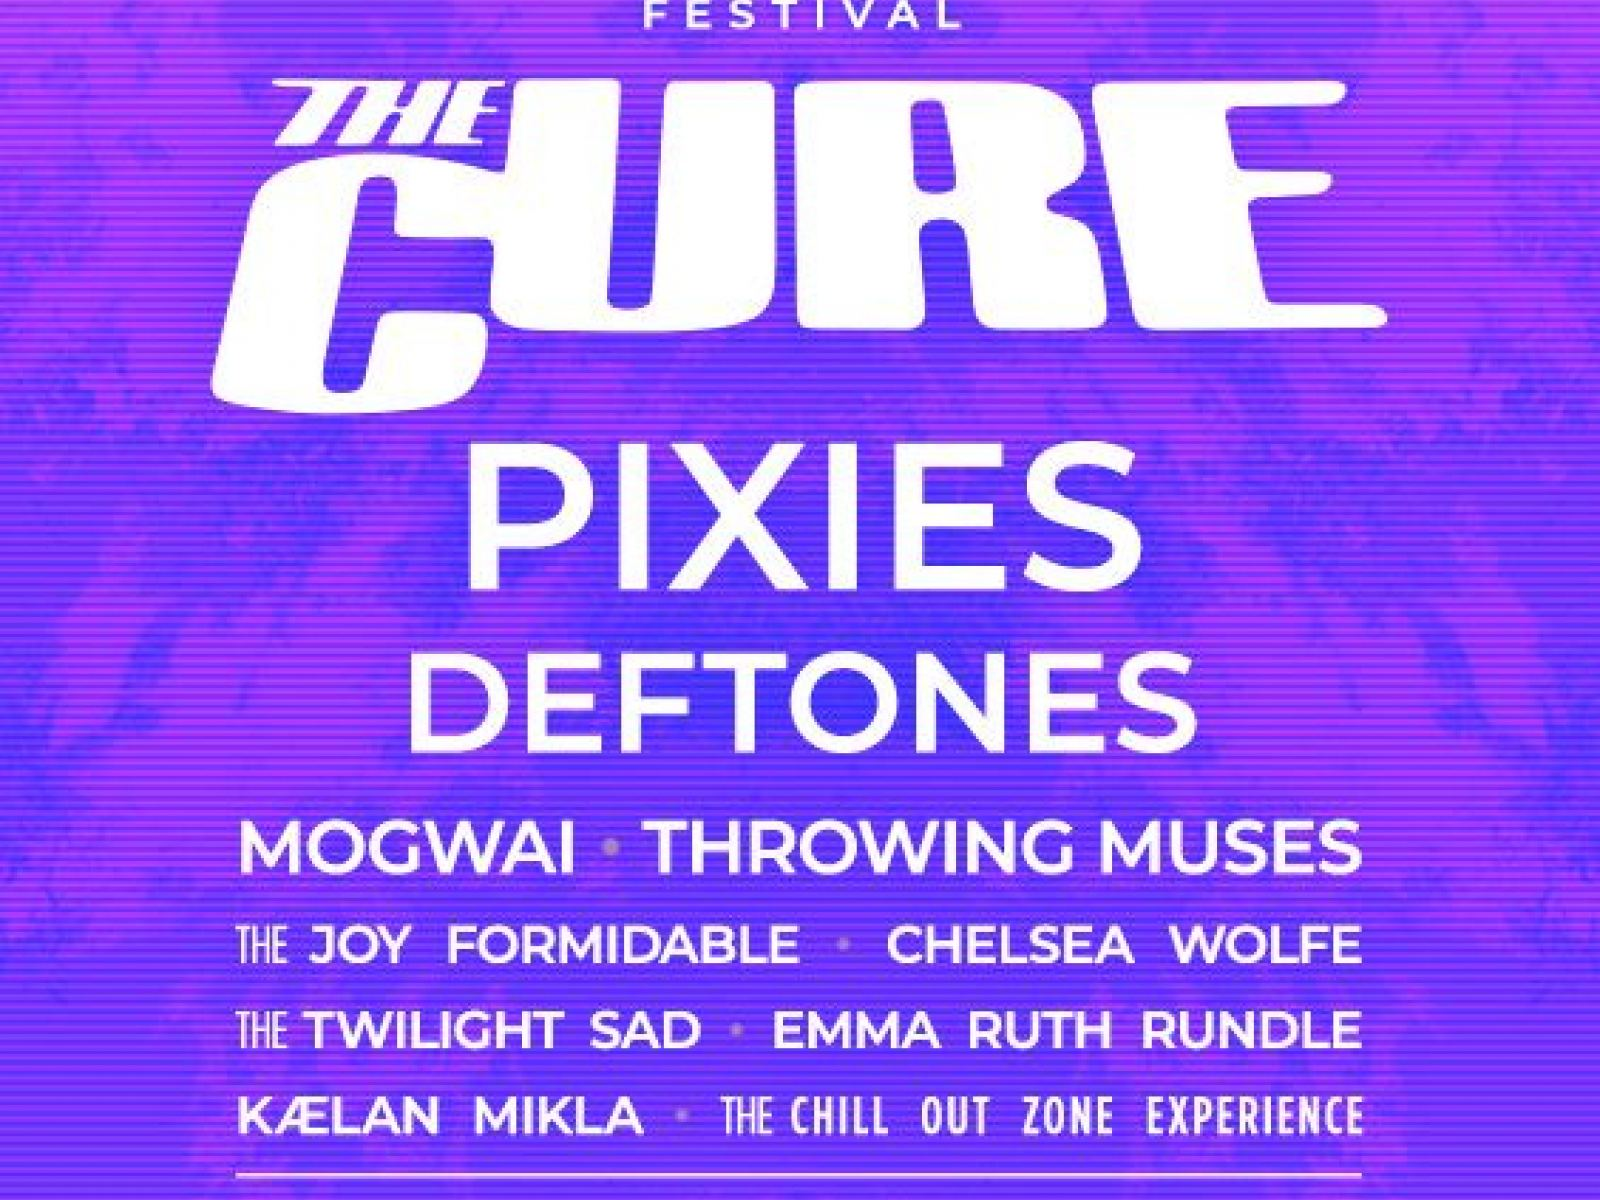 Main image for event titled Pasadena Daydream Festival feat. The Cure, Pixies and more